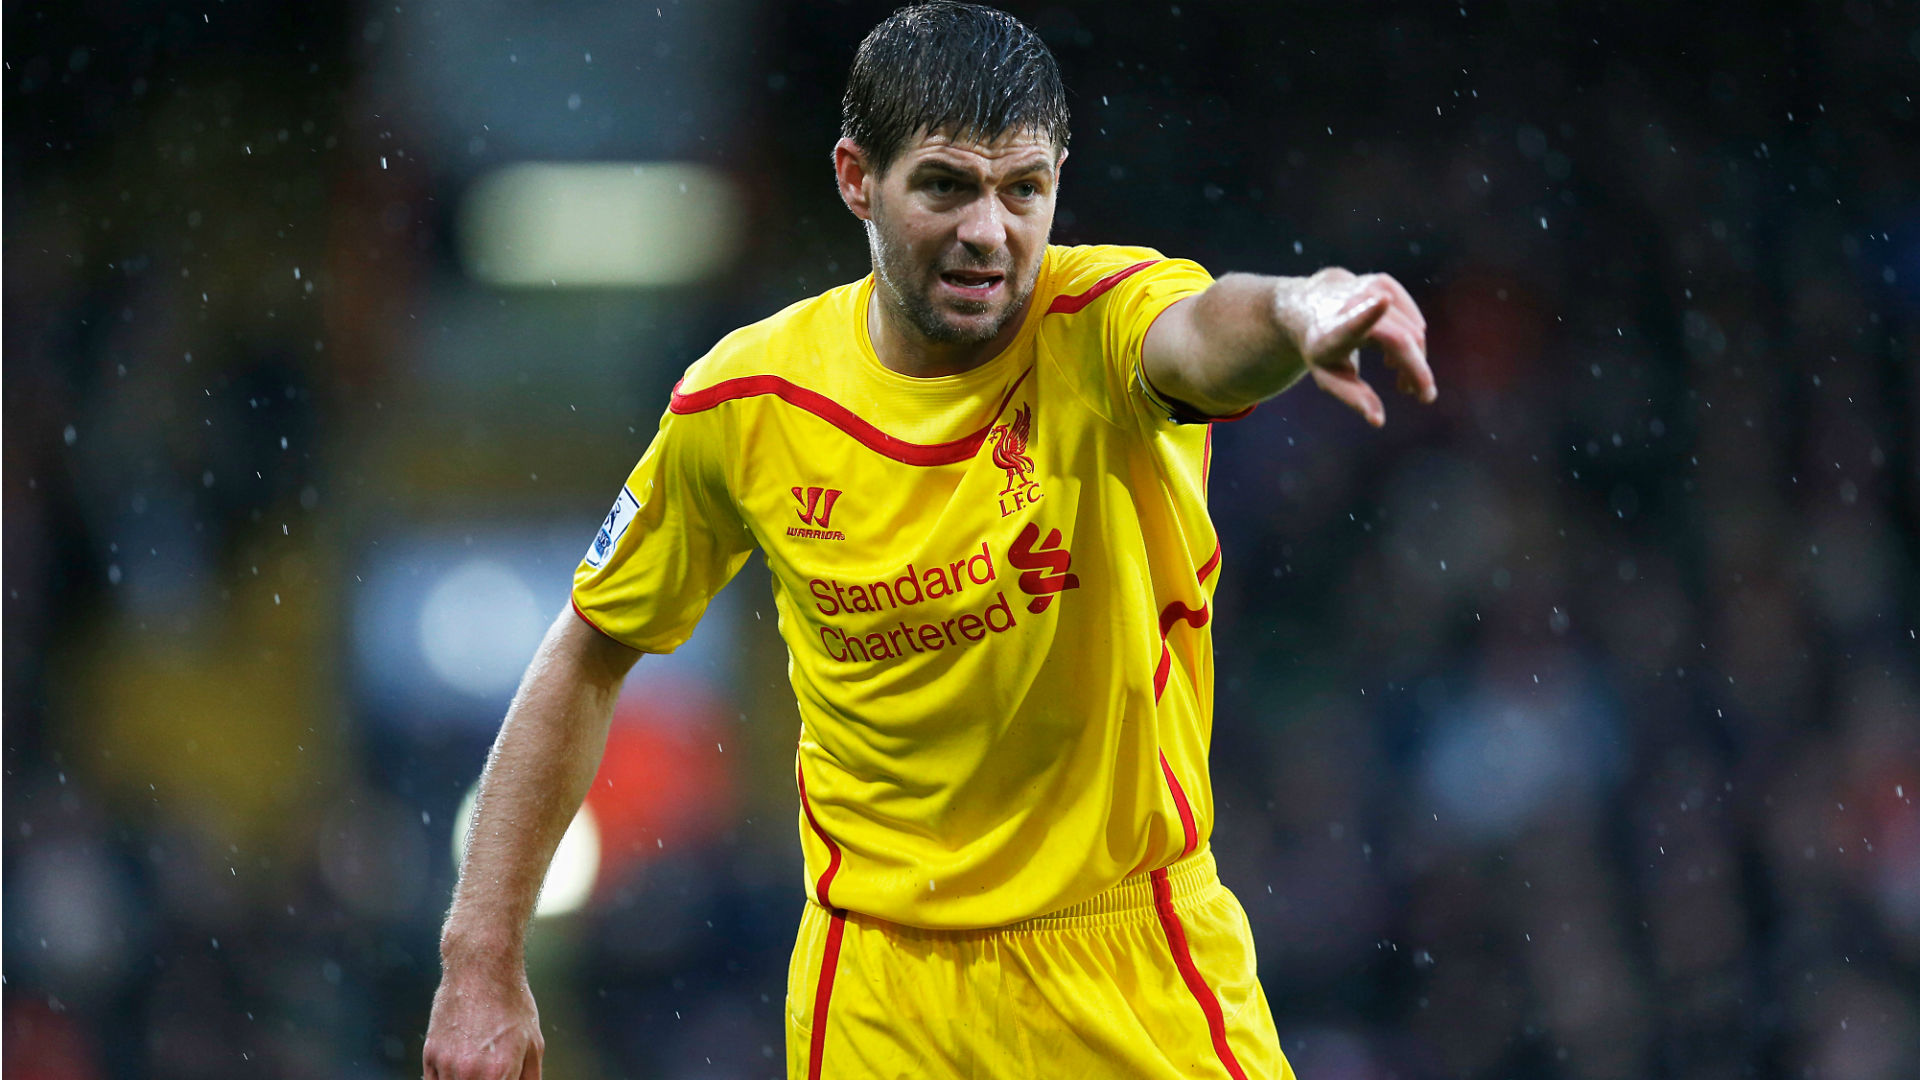 Liverpool vs. Crystal Palace odds and pick - Multiple goals expected in Gerrard's send-off